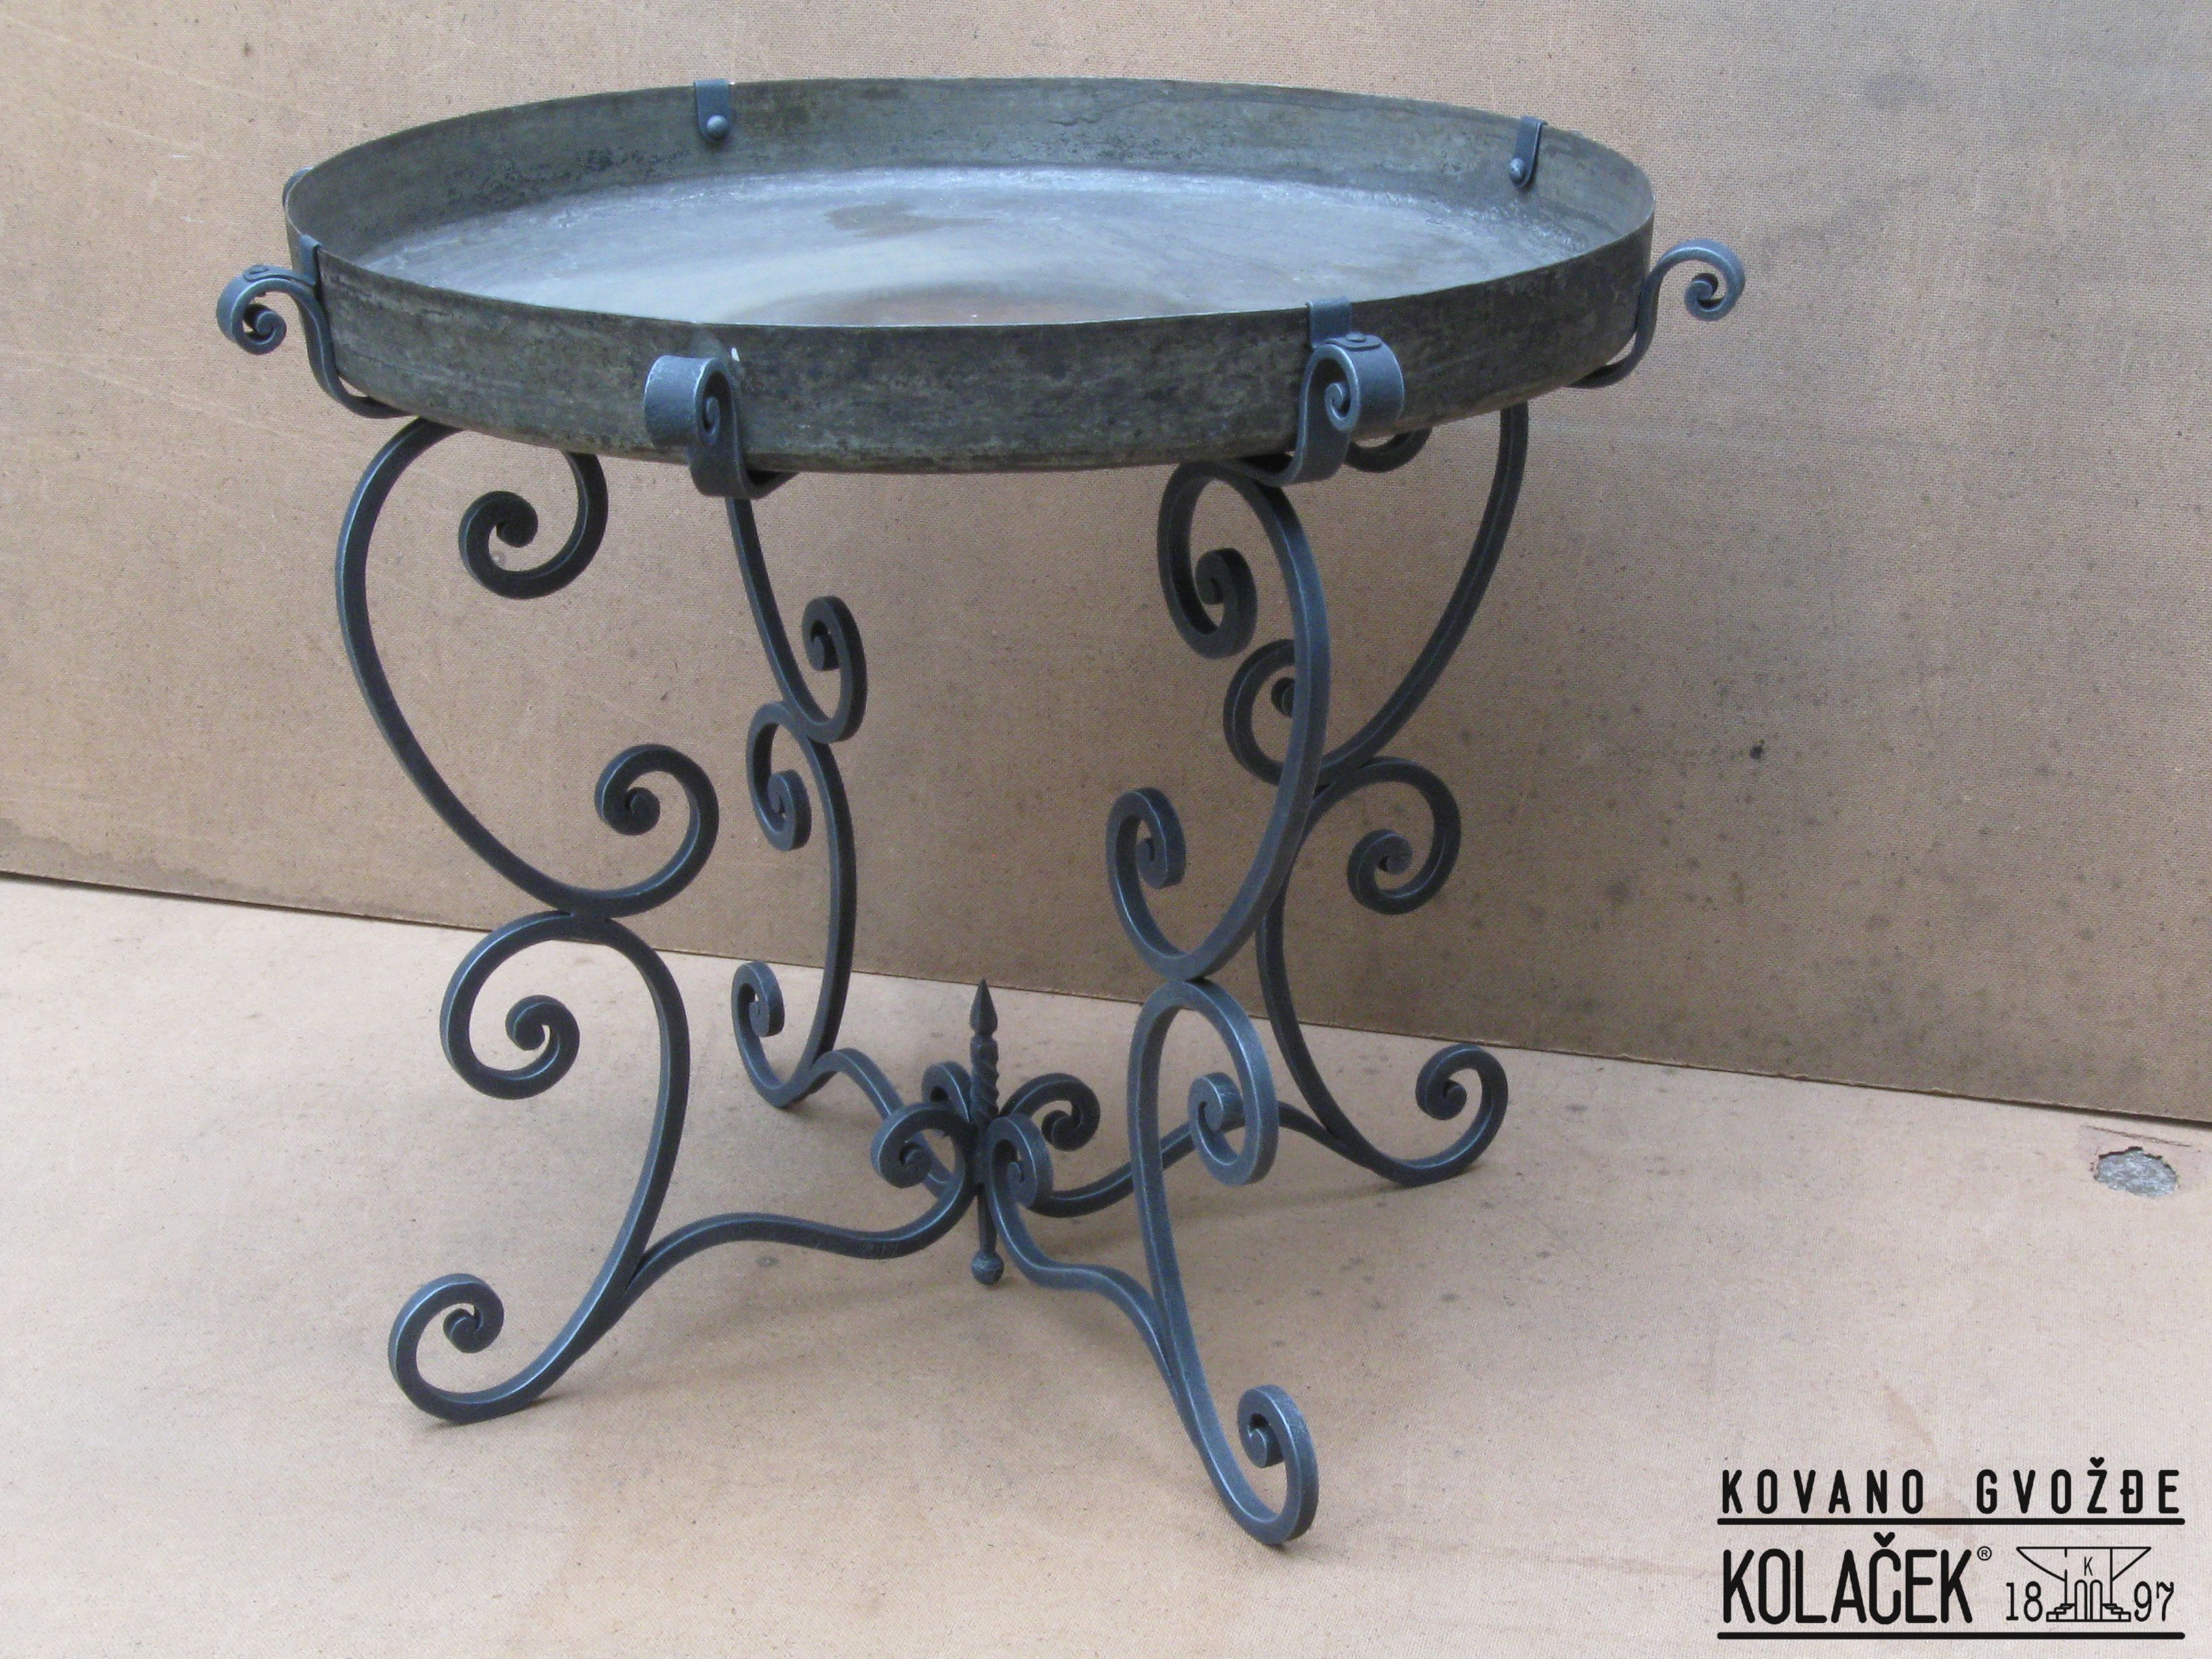 Little table wrought iron Sto od kovanog gvozdja Kolacek 1897